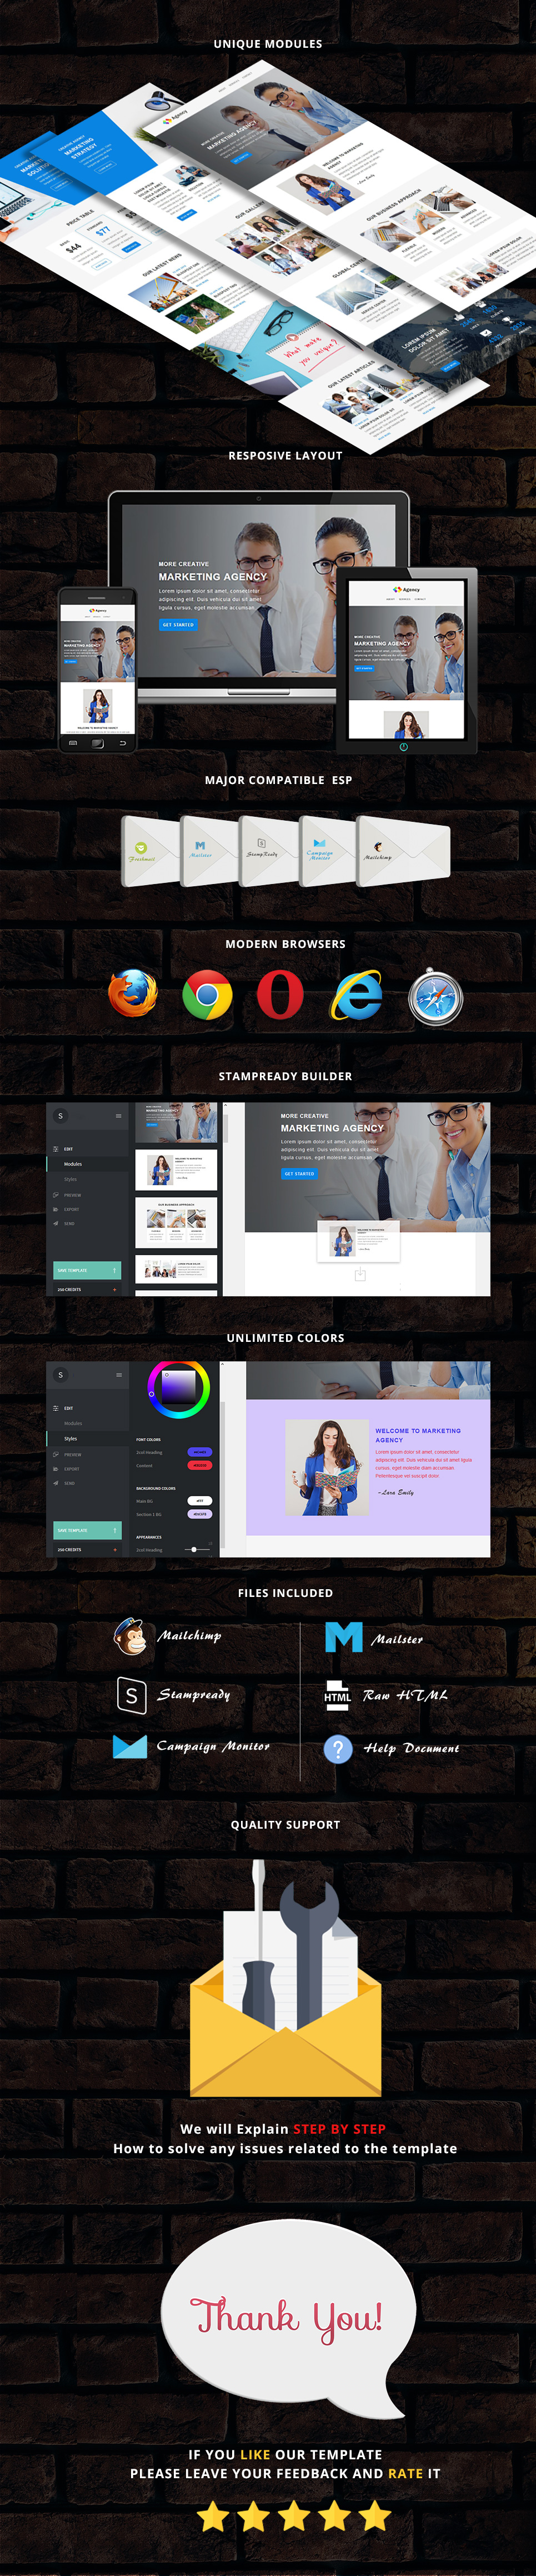 Agency - Responsive Email Template + Stampready Builder Access